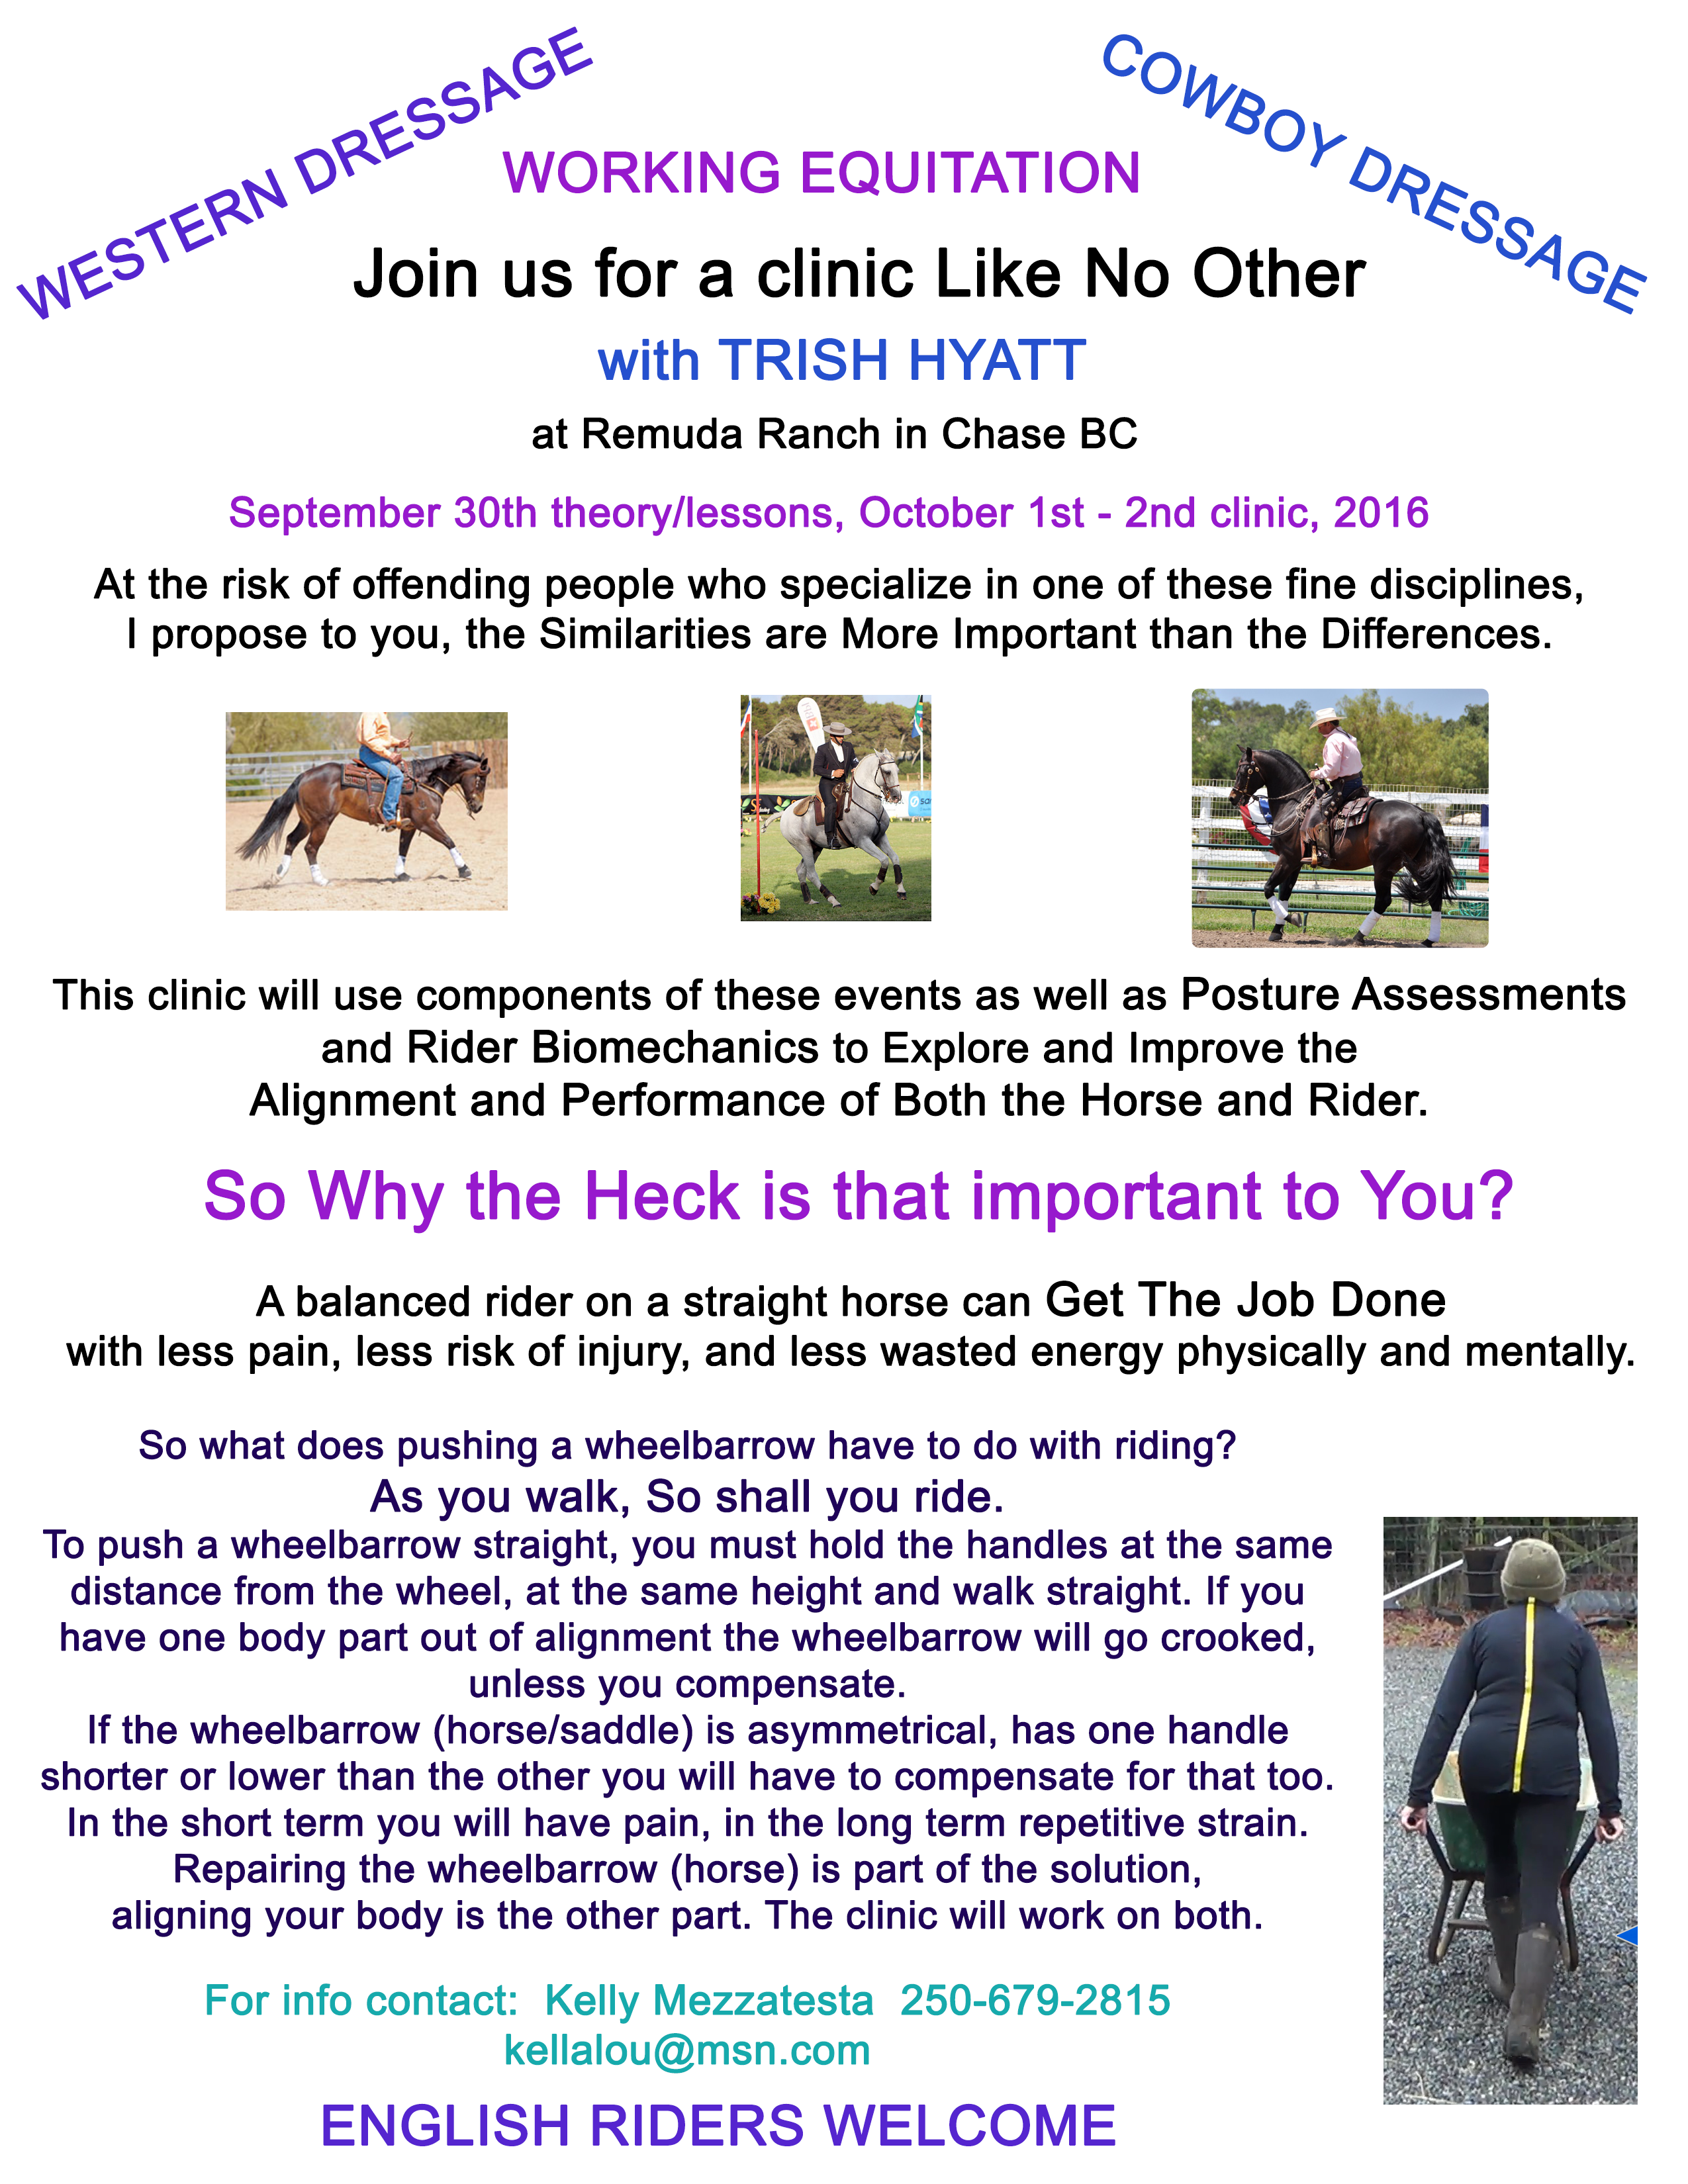 May 2016 Clinic in Chase